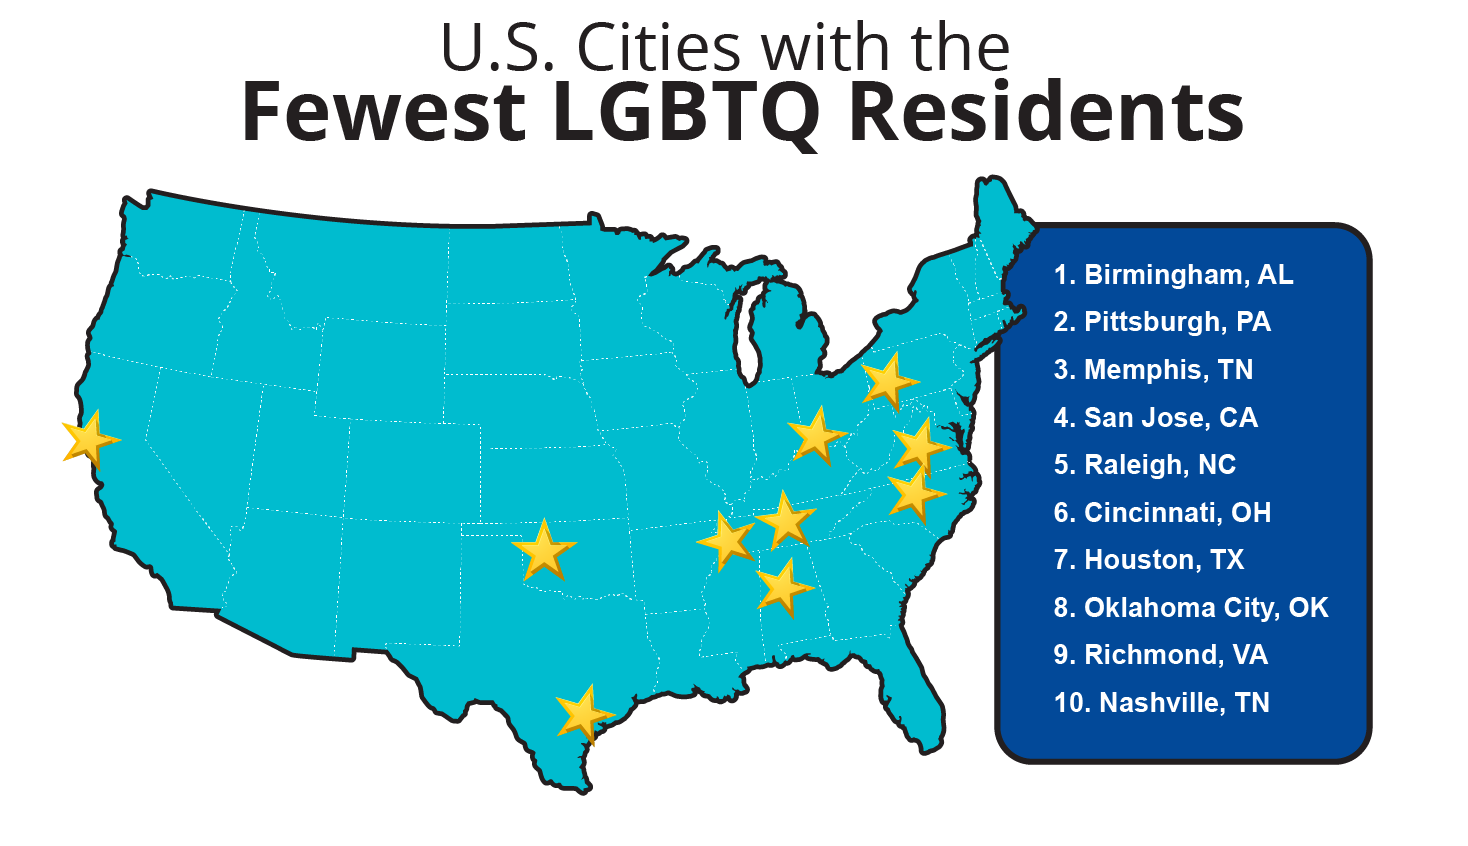 US Cities with the Fewest LGBTQ Residents